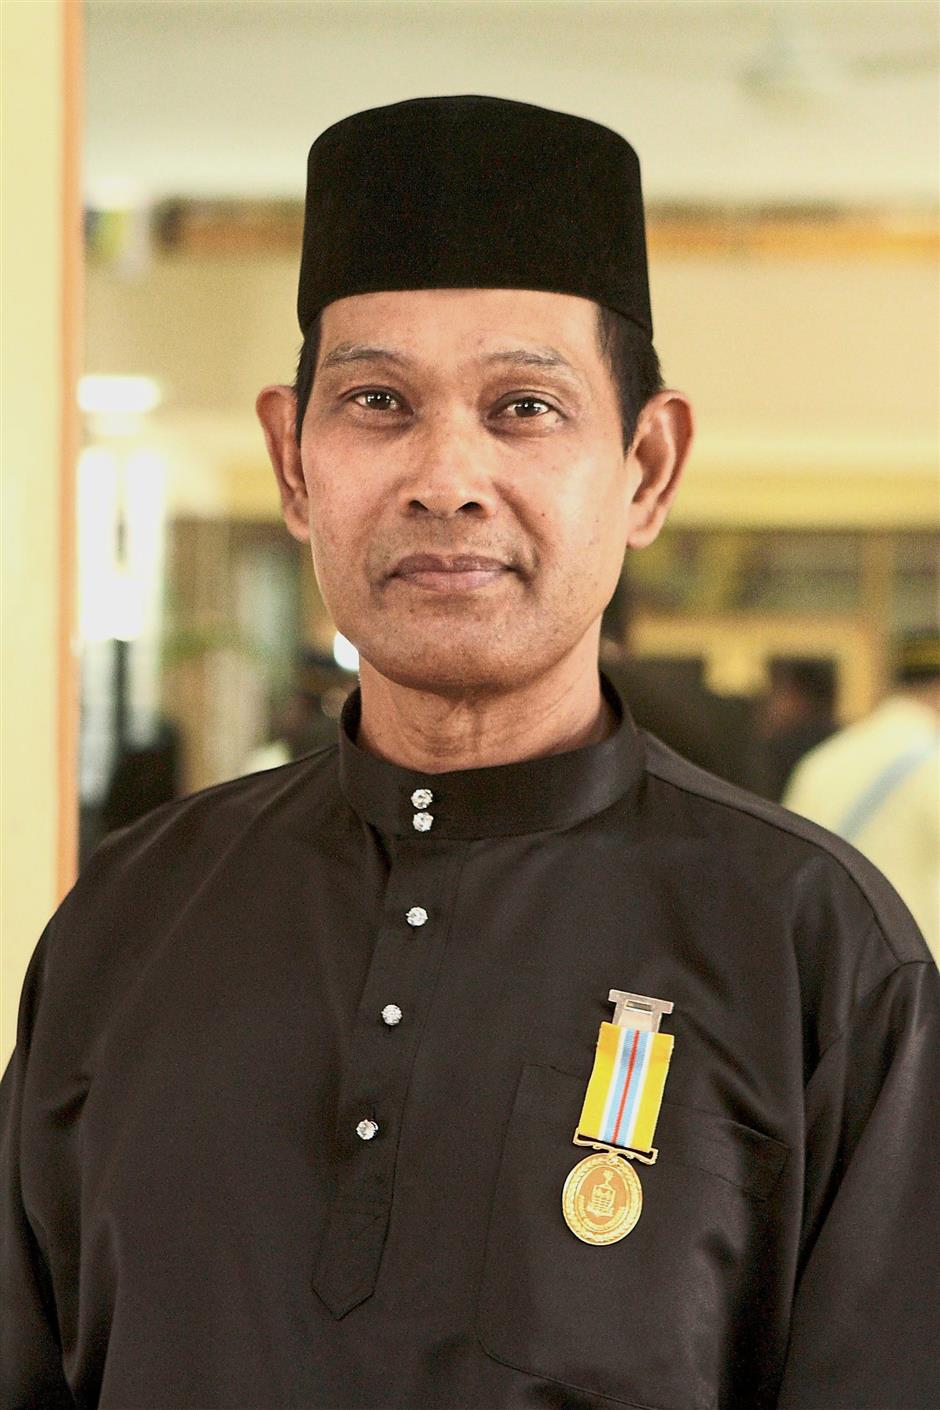 Auxiliary policeman Konst Zaidi Salleh is the sole recipient of the PGP award.